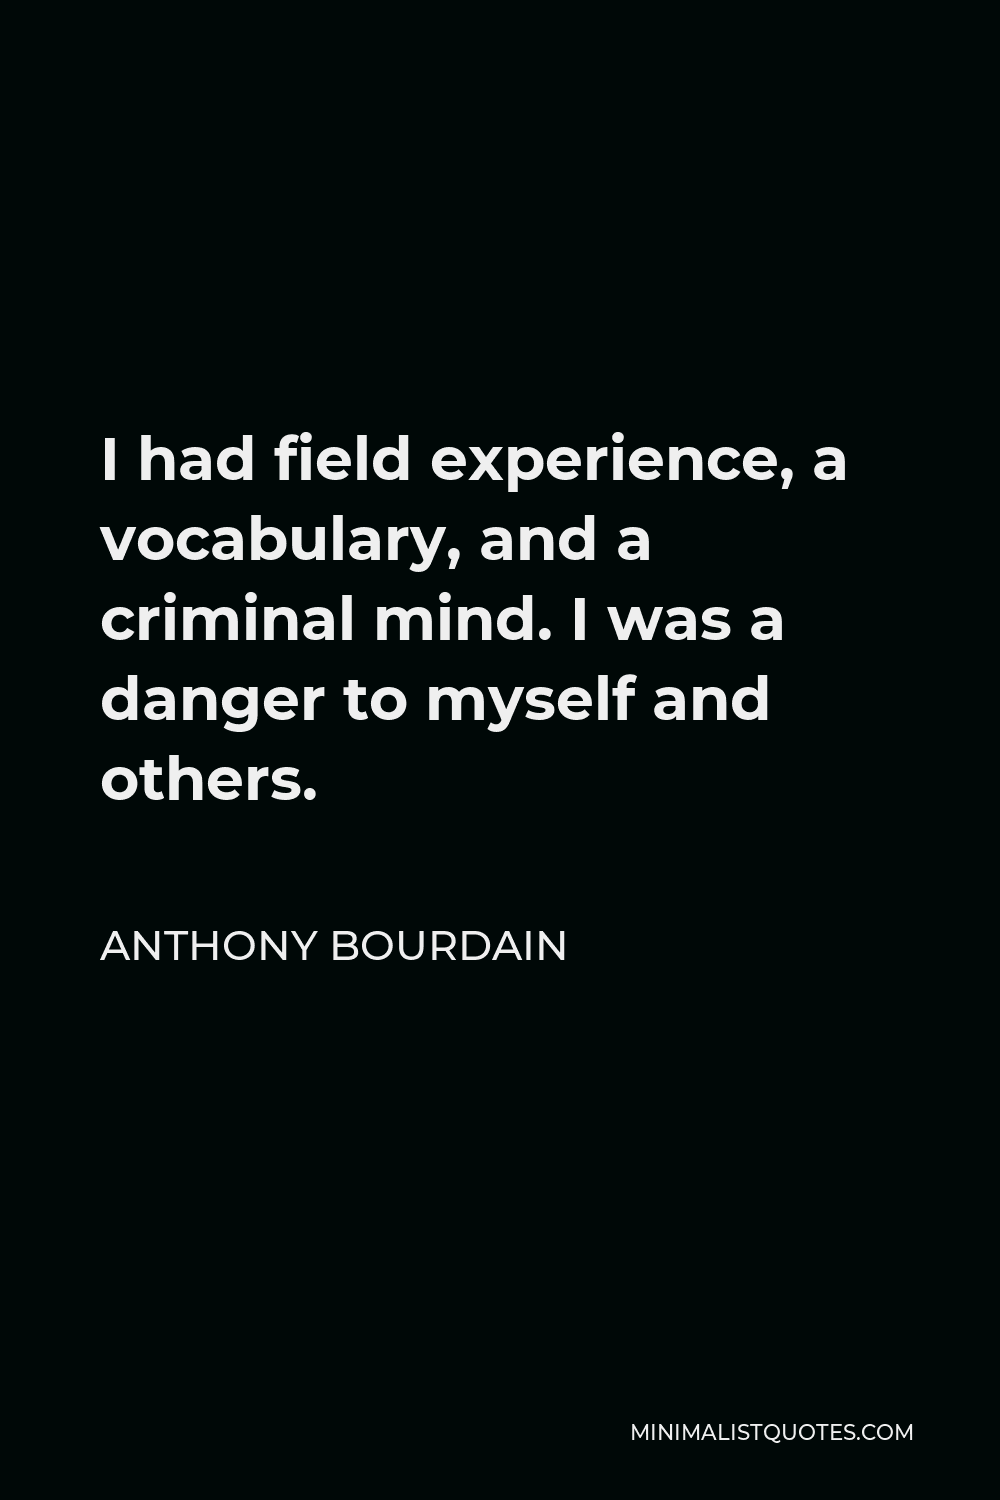 Anthony Bourdain Quote - I had field experience, a vocabulary, and a criminal mind. I was a danger to myself and others.